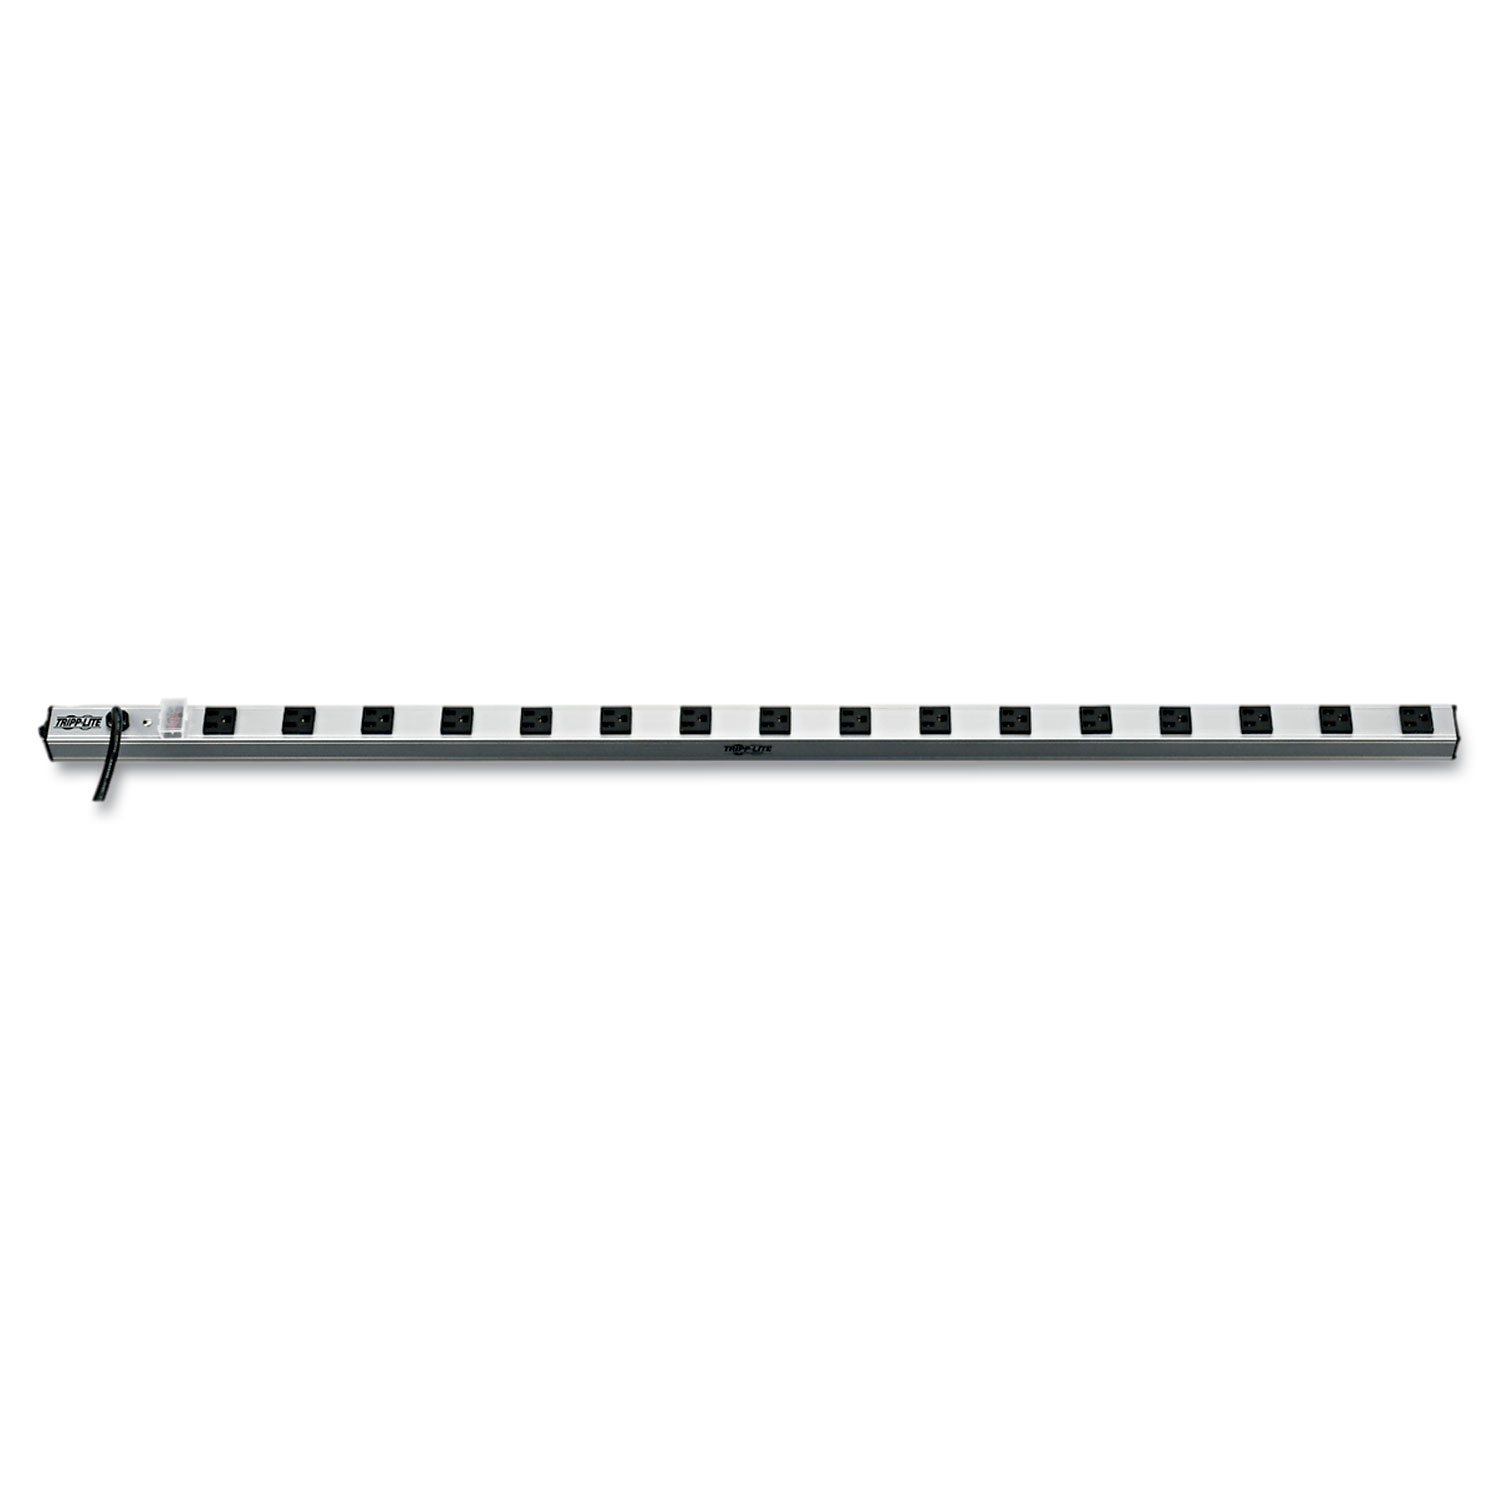 """Vertical Power Strip, 16 Outlets, 15 ft. Cord, 48"""" Length"""